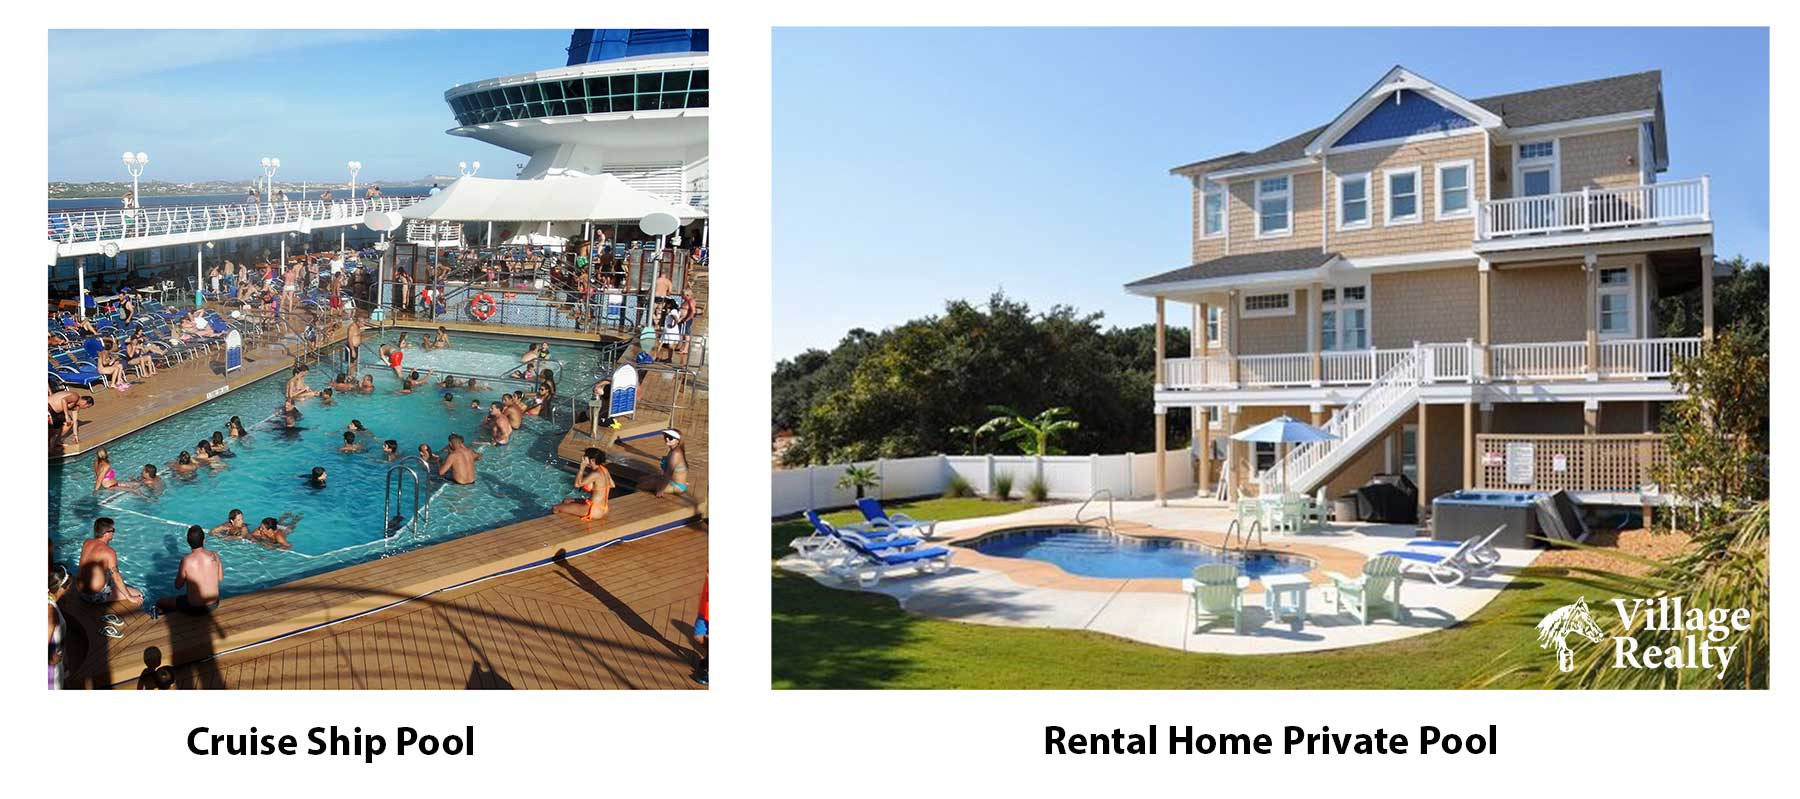 Cruise ship swimming pool versus rental home private pool